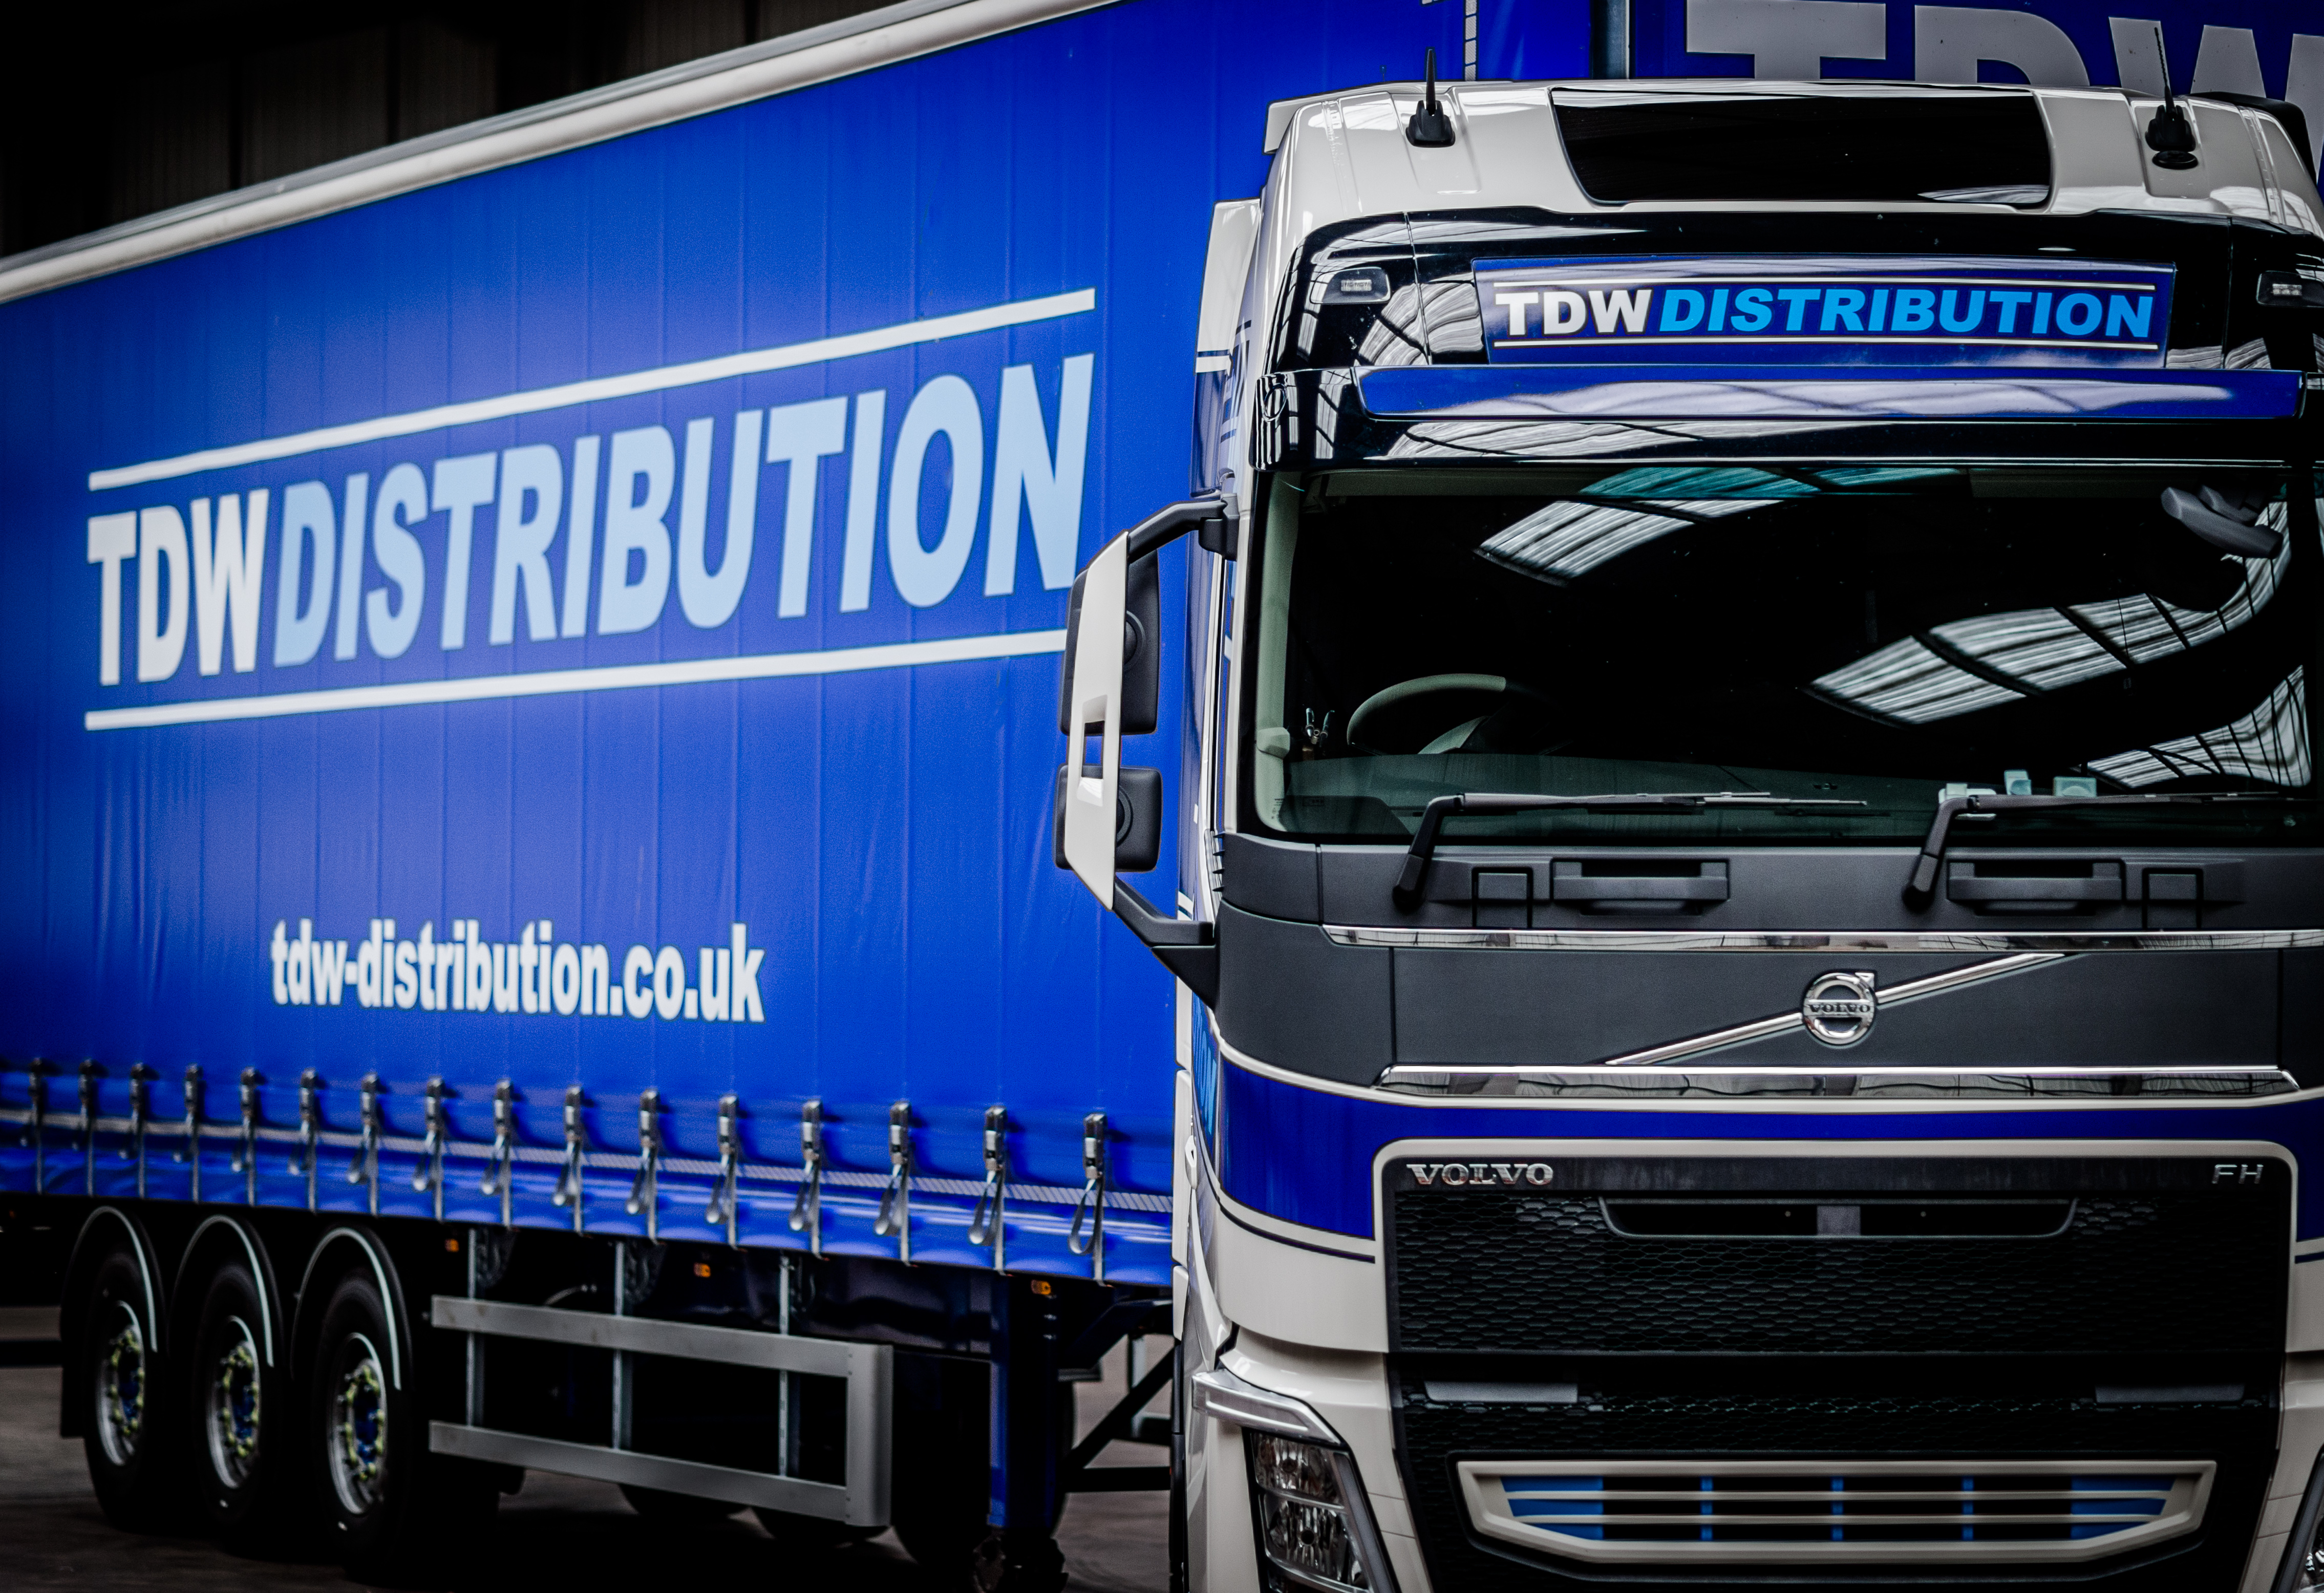 TDW Distribution Selects Microlise As Technology Partner For The Long Haul